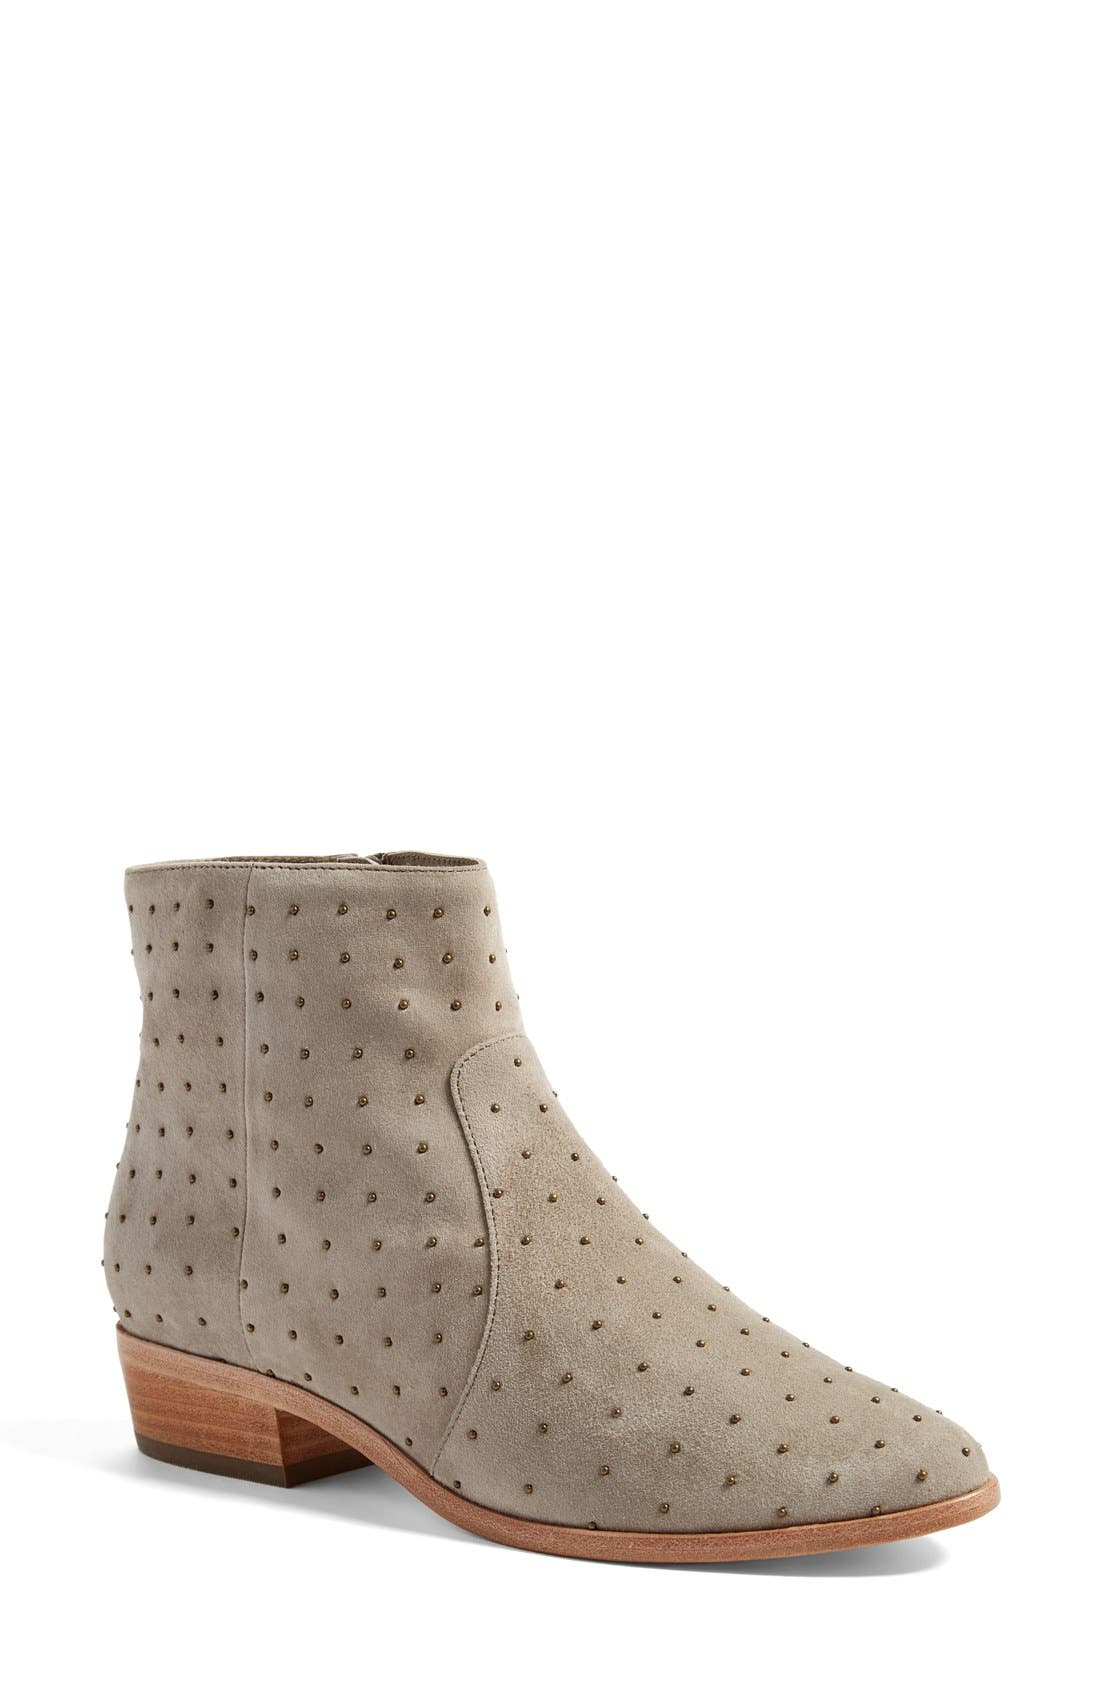 Alternate Image 1 Selected - Joie Lacole Studded Bootie (Women)